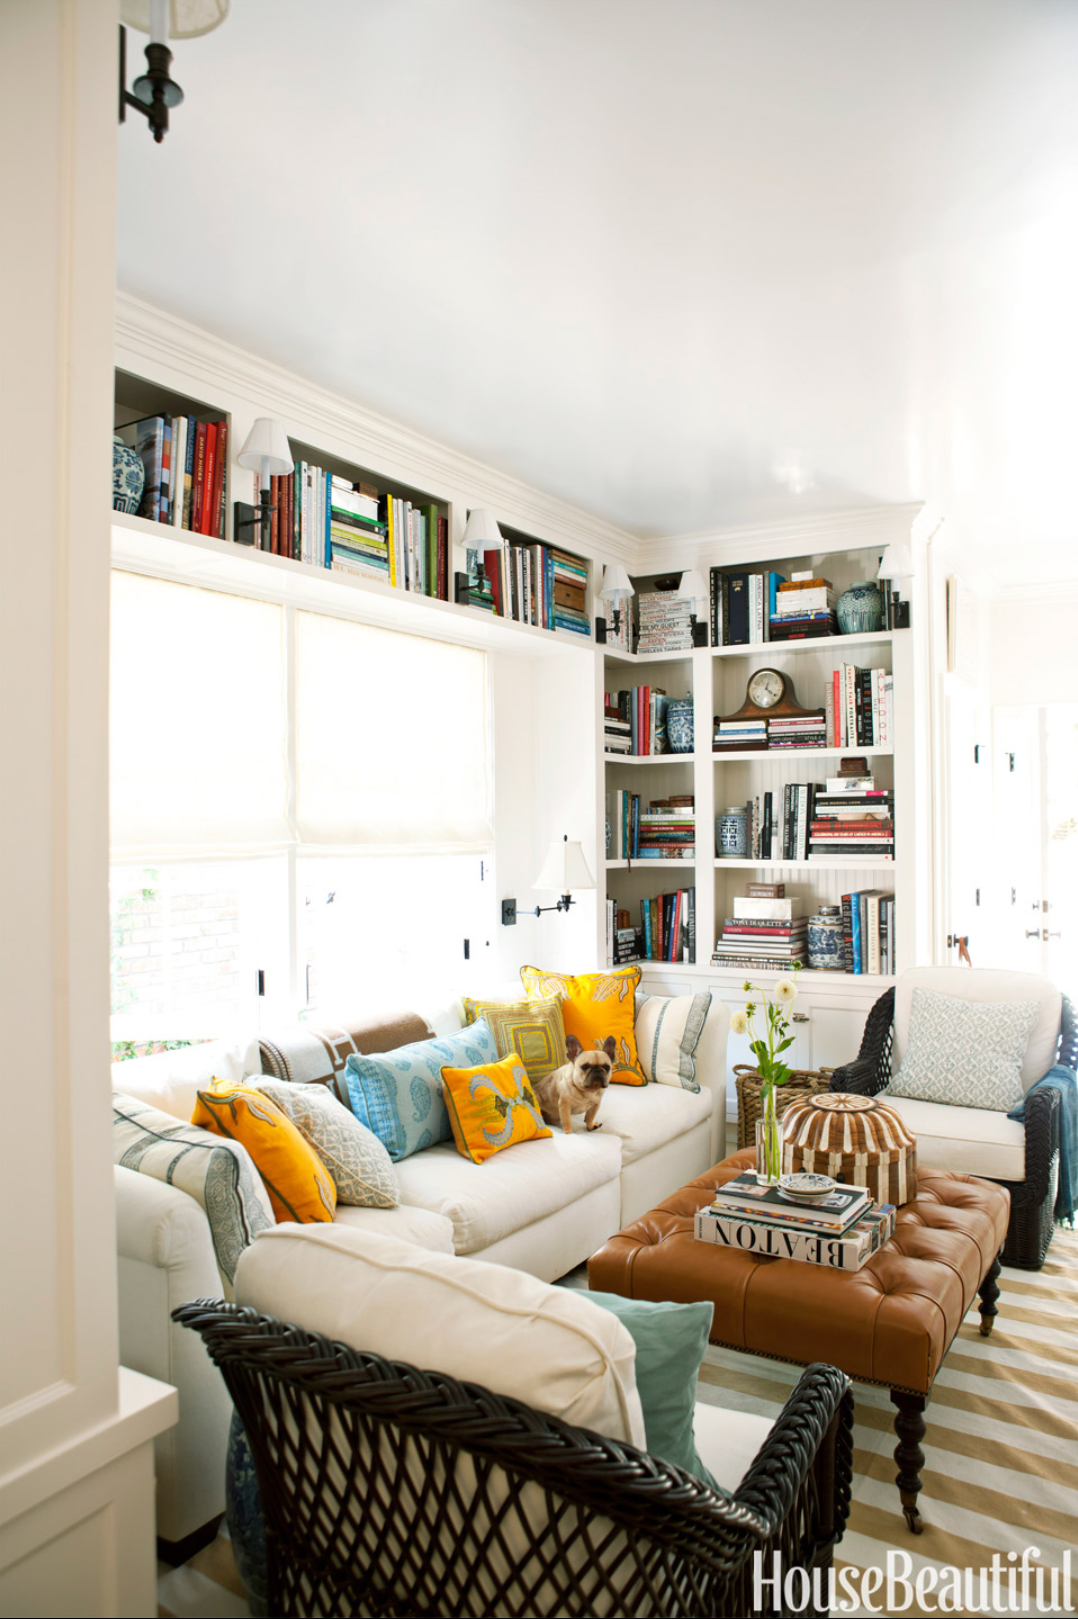 Family Home Interior Design Ideas: Here's How To Decorate A Family Room Everyone Will Actually Want To Hang Out In